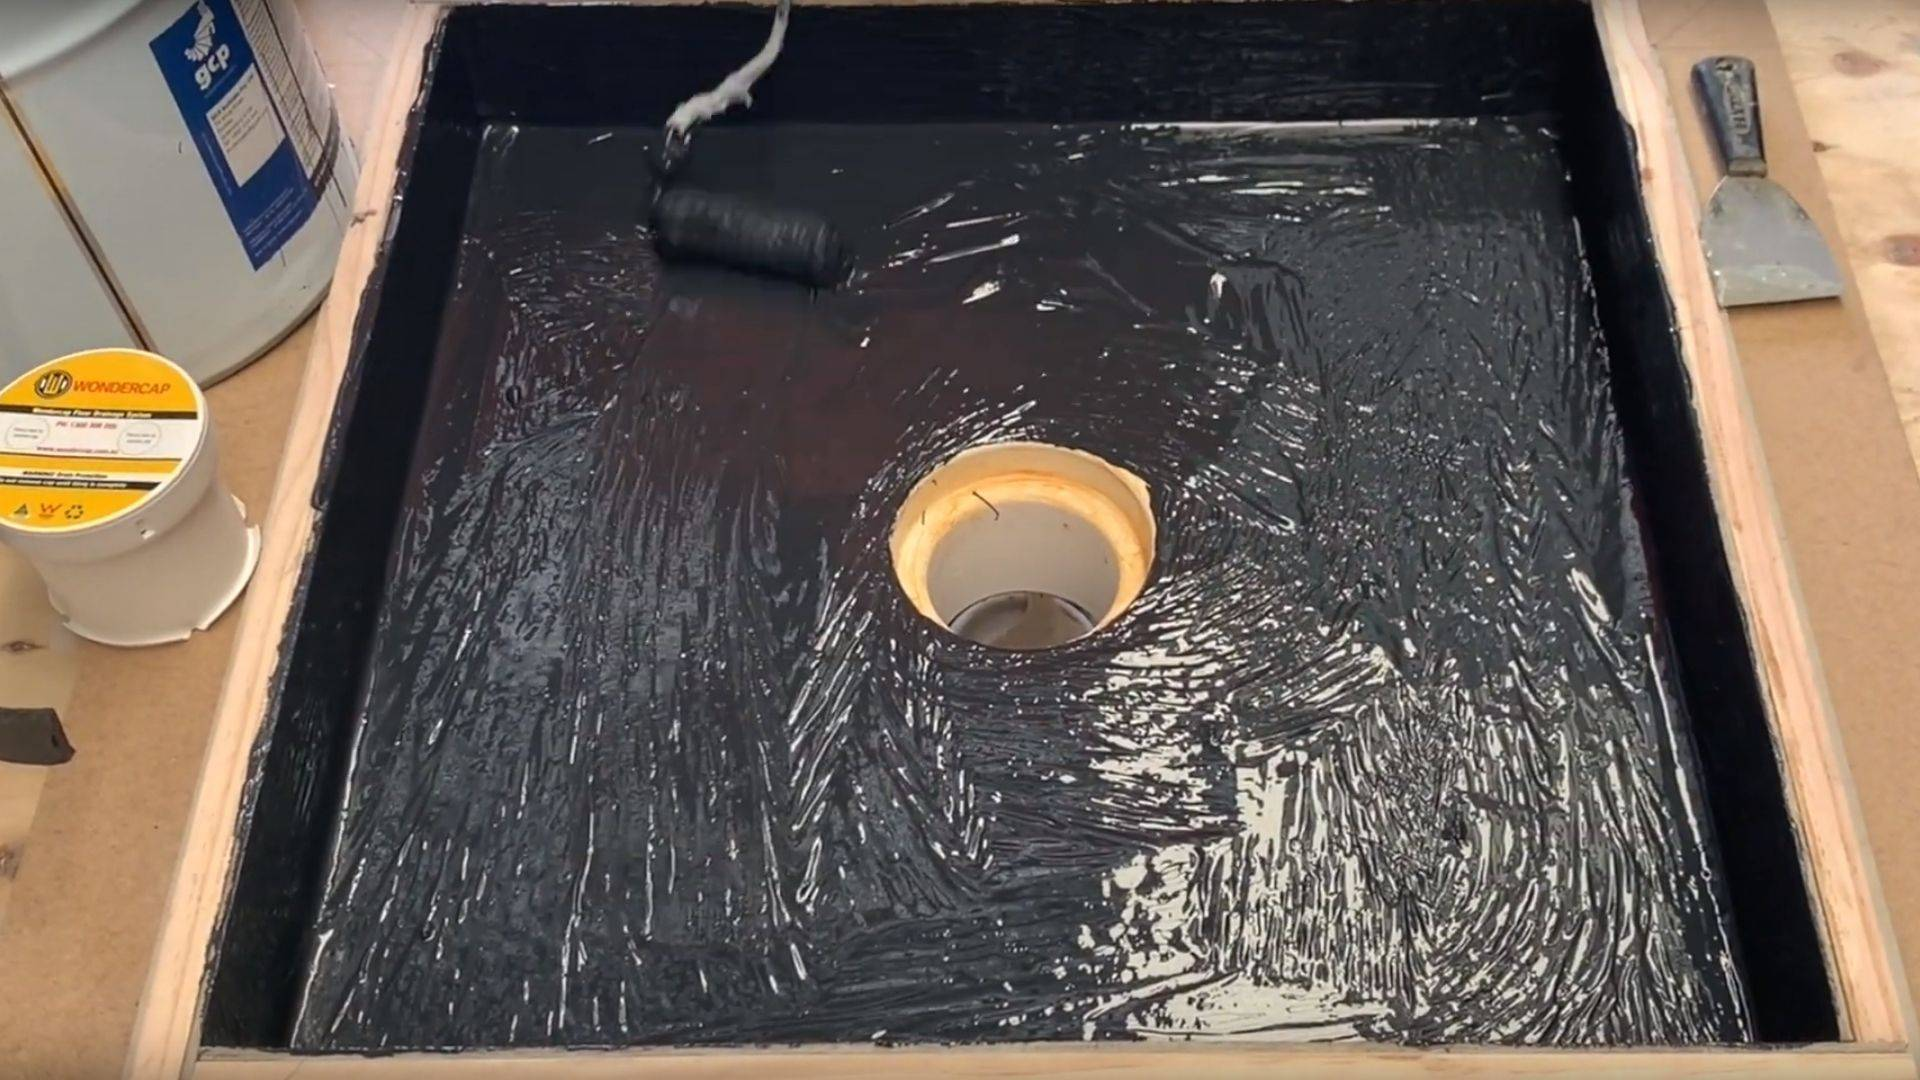 Learn how to waterproof your floor waste properly using the Wondercap puddle flange and shower drain system